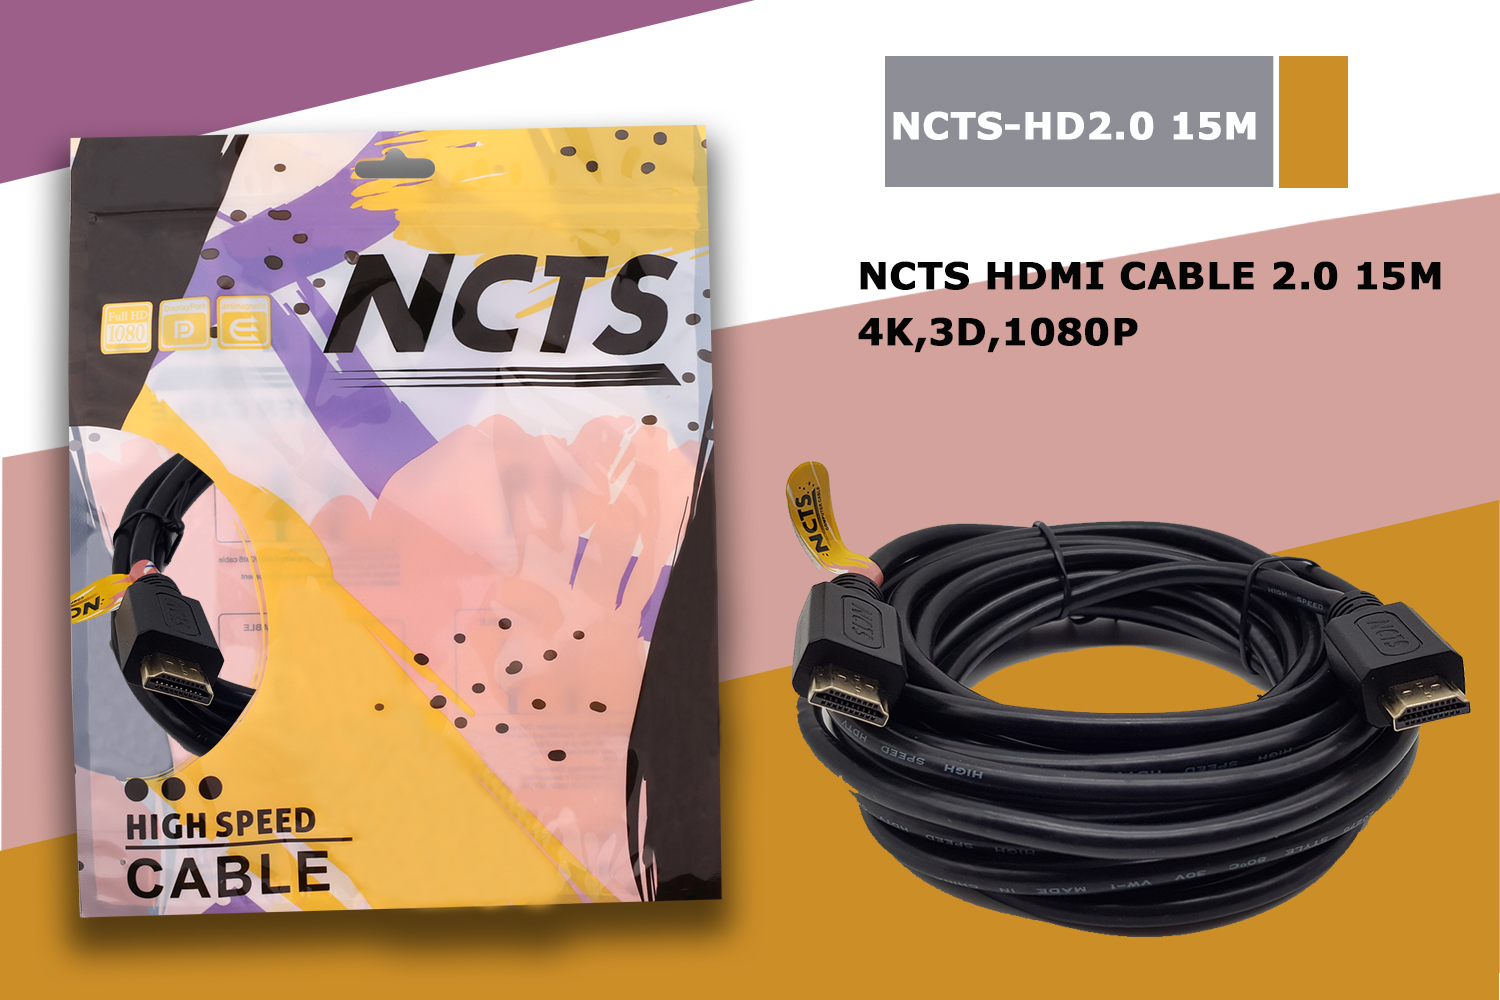 HDMI CABLE 2.0 15M 4K,3D,1080P